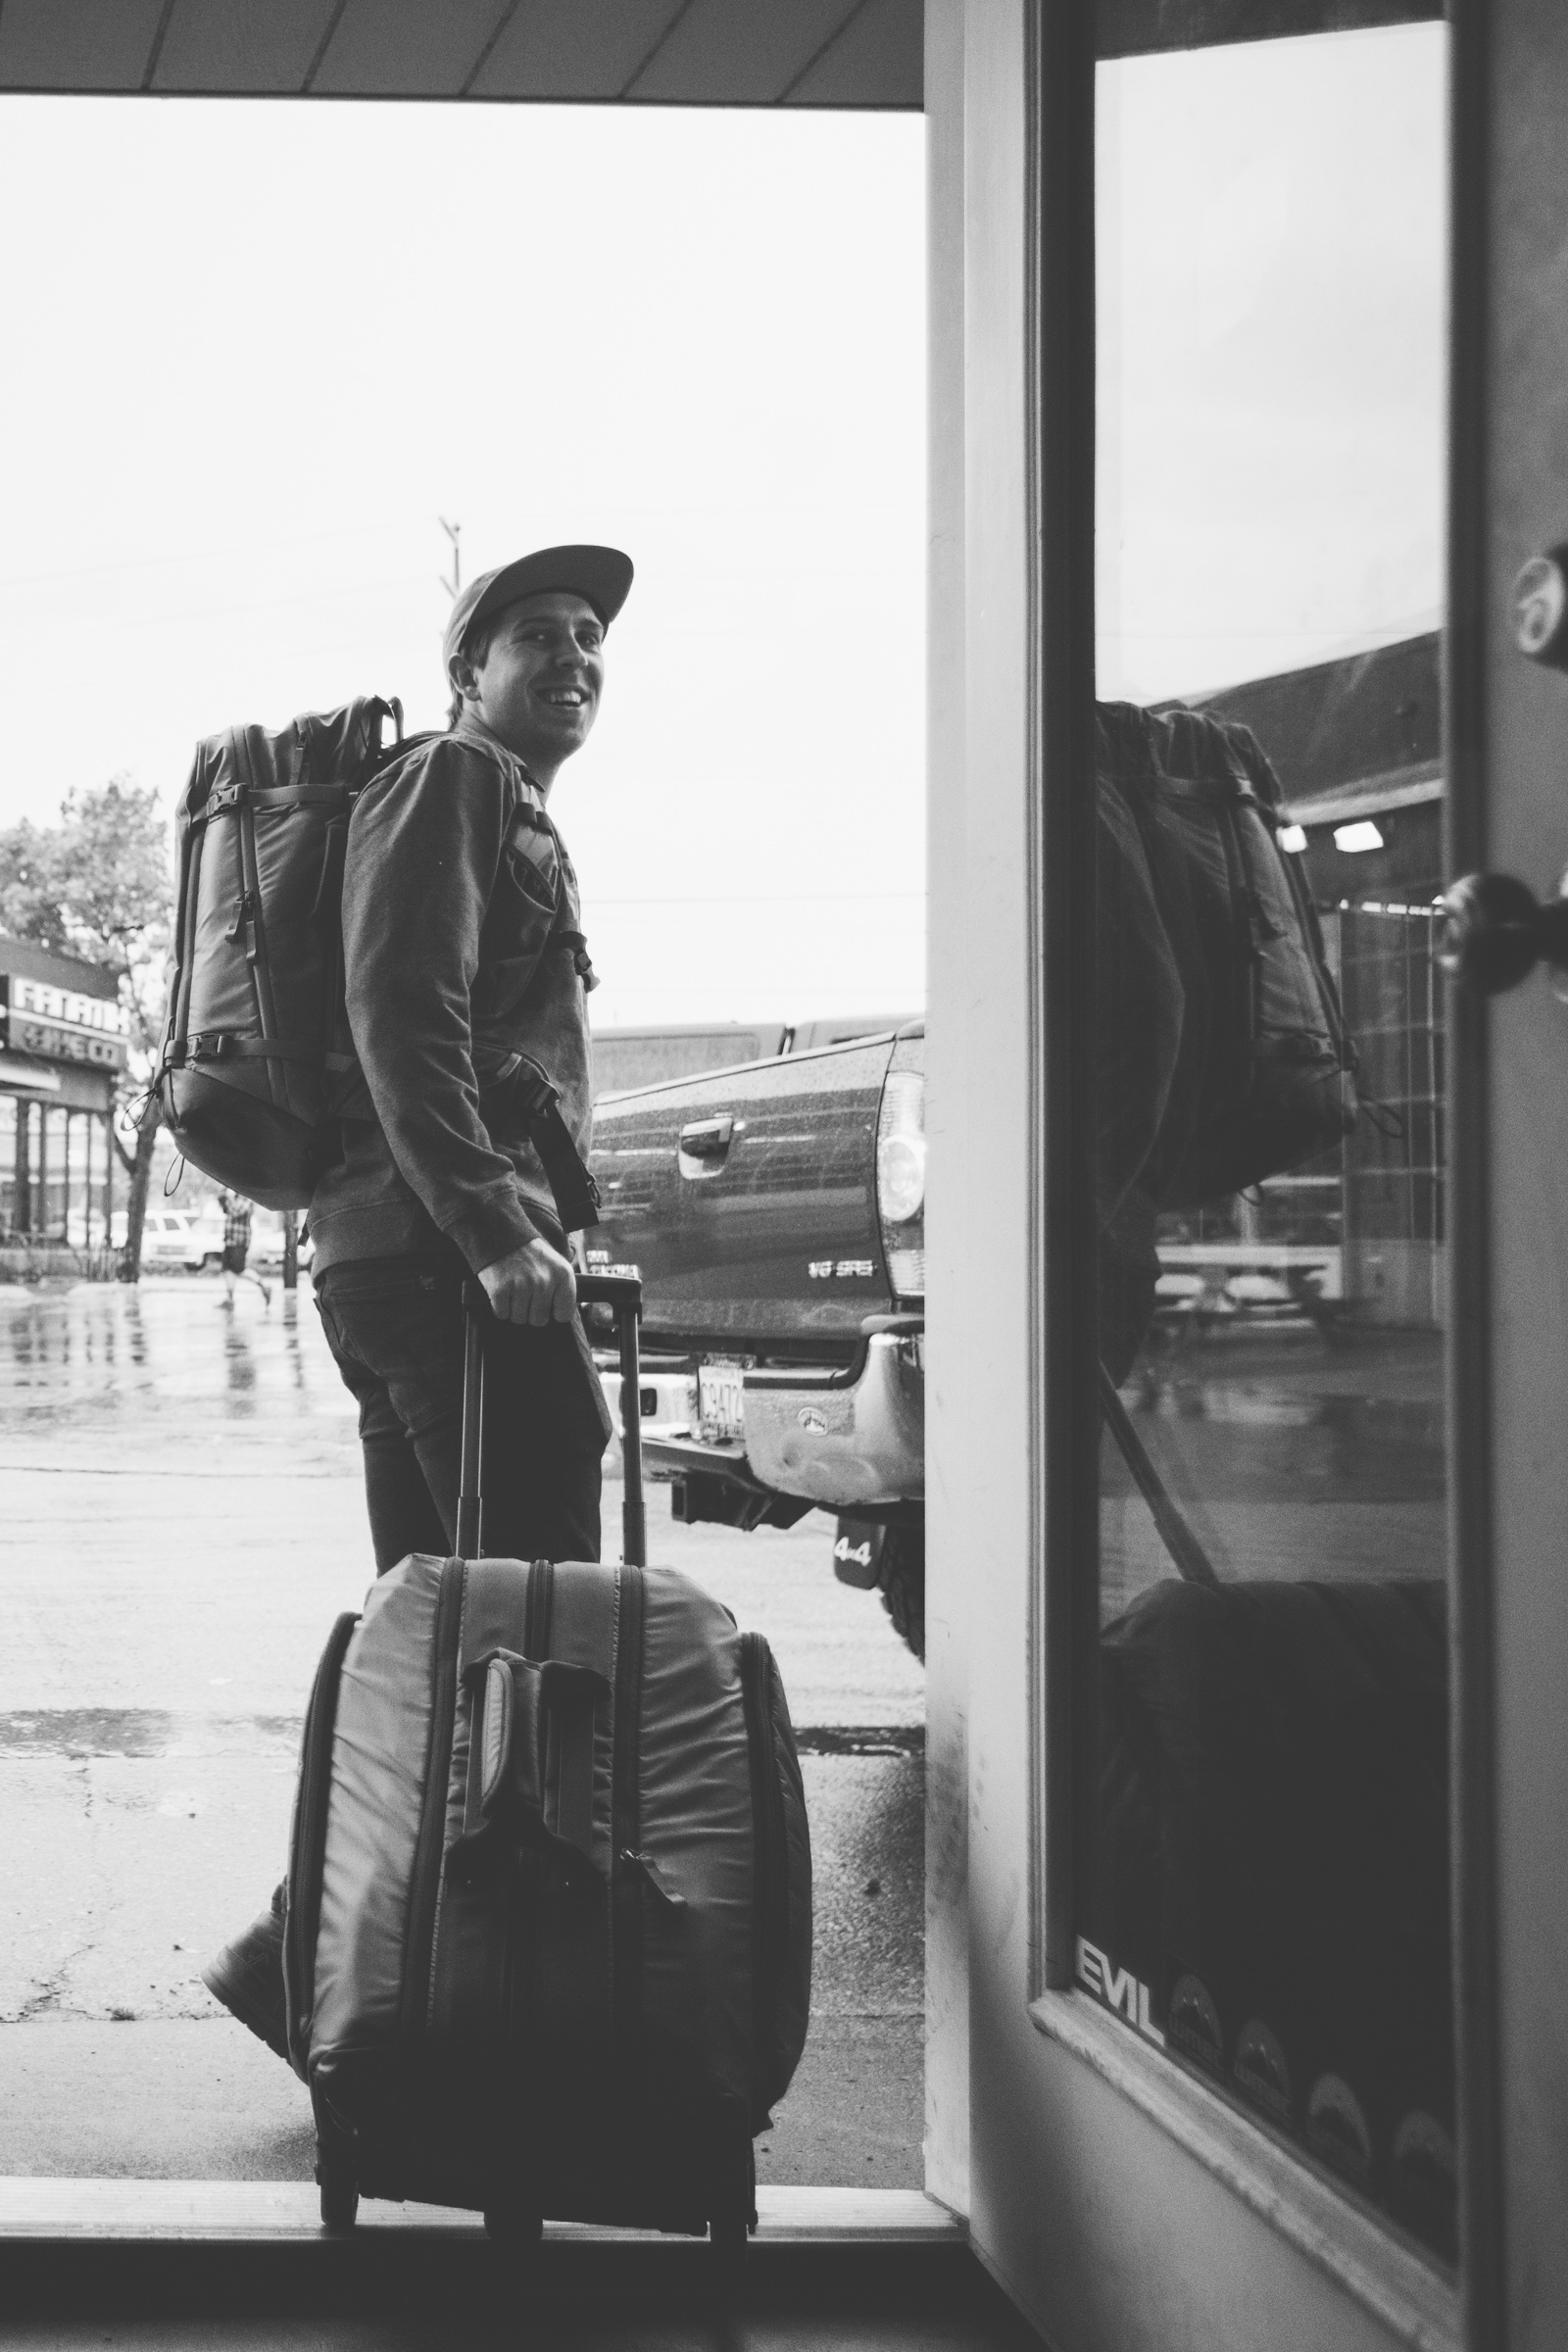 Paris Gore packing up to leaving for 2017 Red Bull Rampage